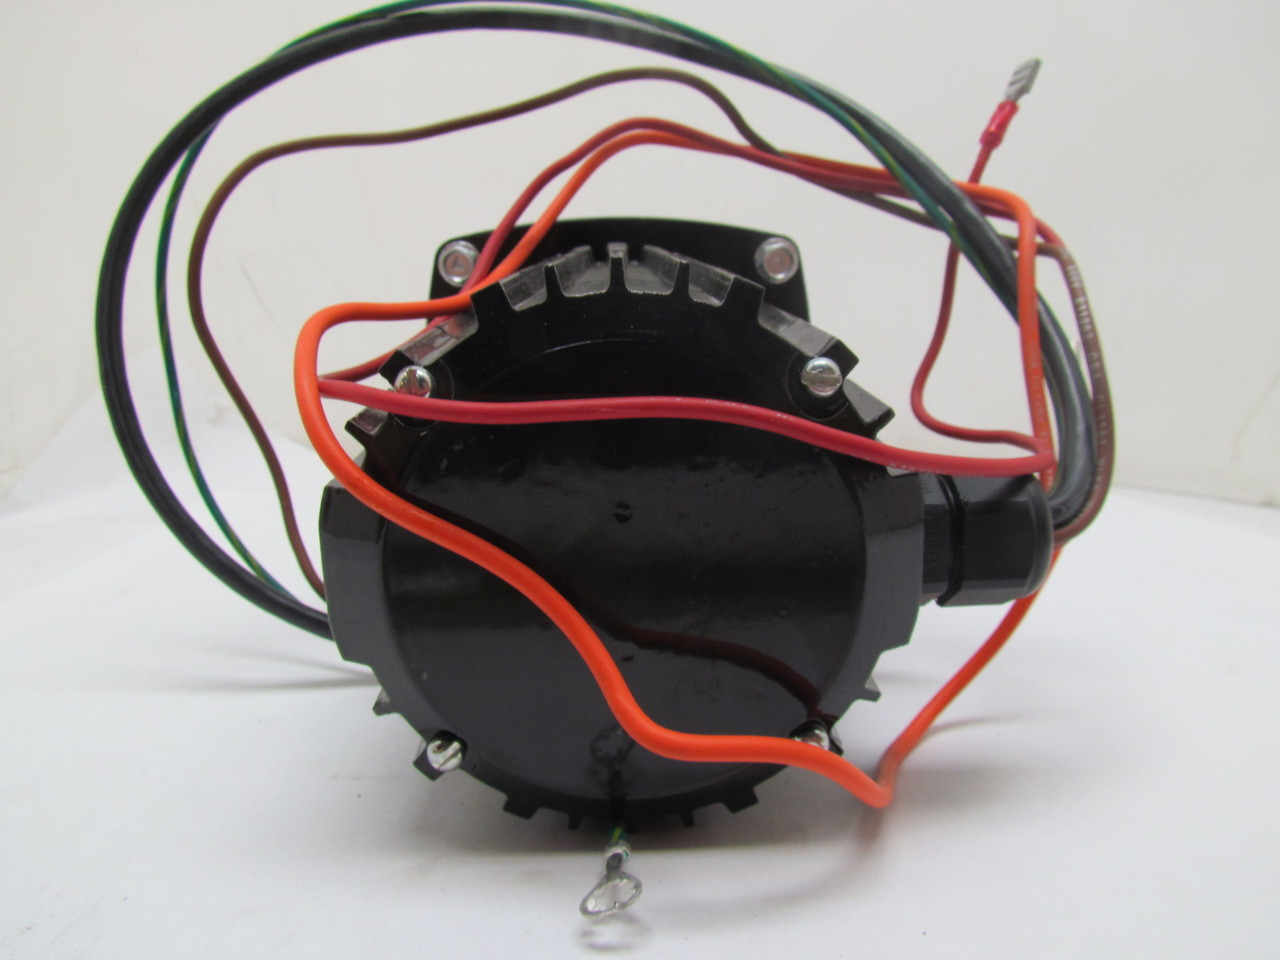 Bodine Dc Motor Wiring Diagram 30 Images Additionally Electric Also Thermal Shrutiradio 58762 34b6bebl F3 24v Gearmotor 18amp 3 8hp 125rpm 201 Ratio 9resize